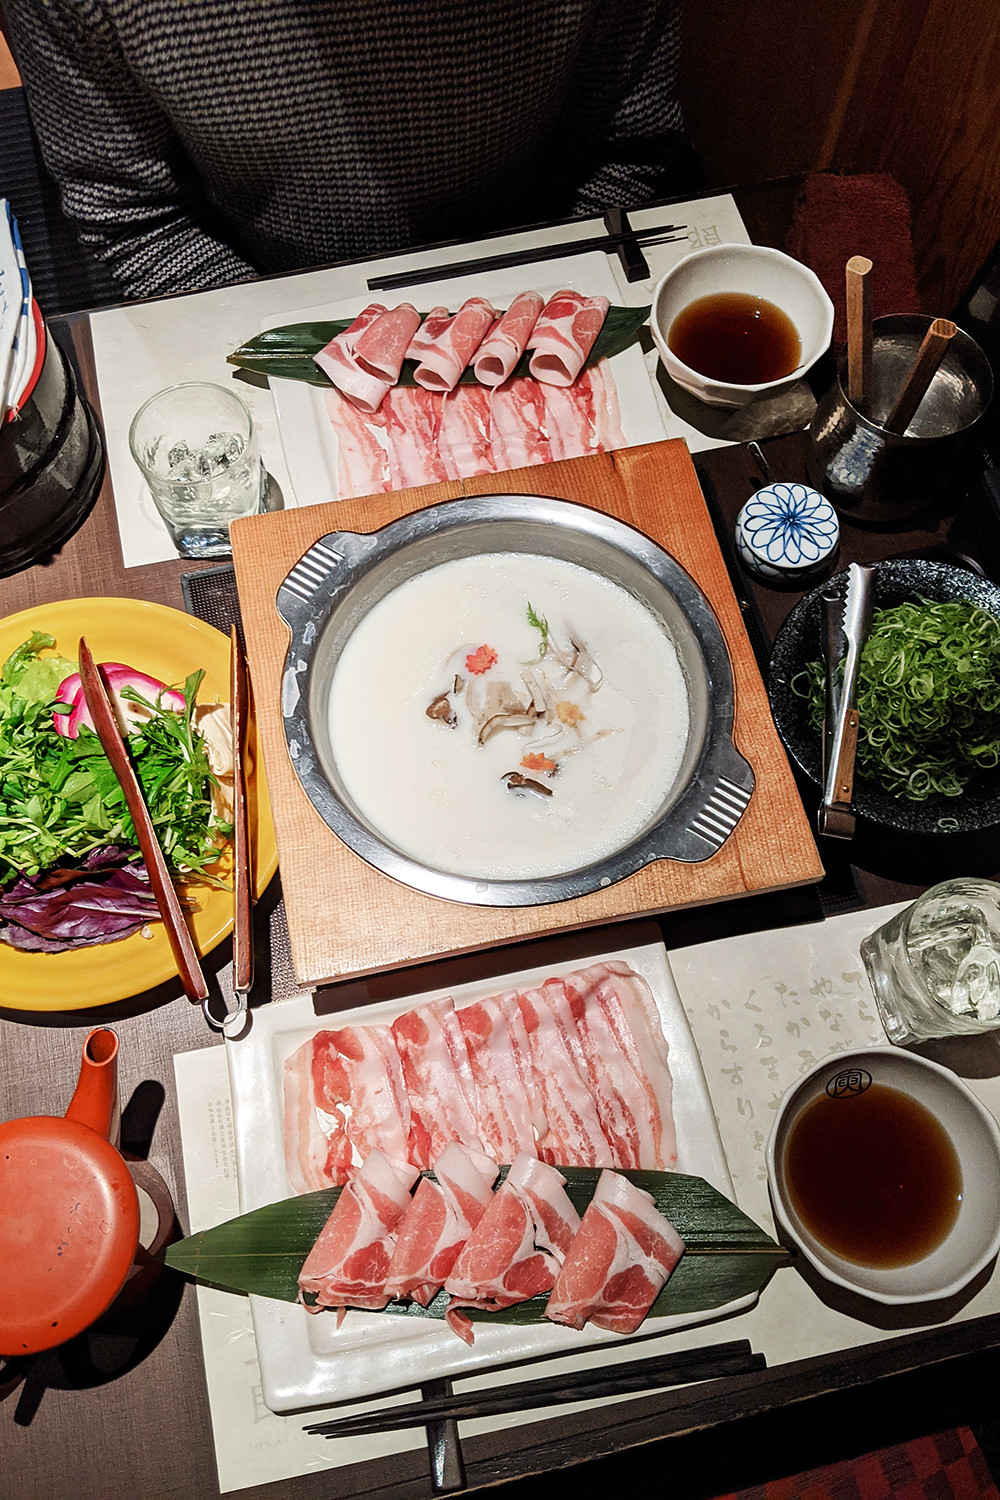 48kyoto-japan-torataro-shabushabu-food-travel